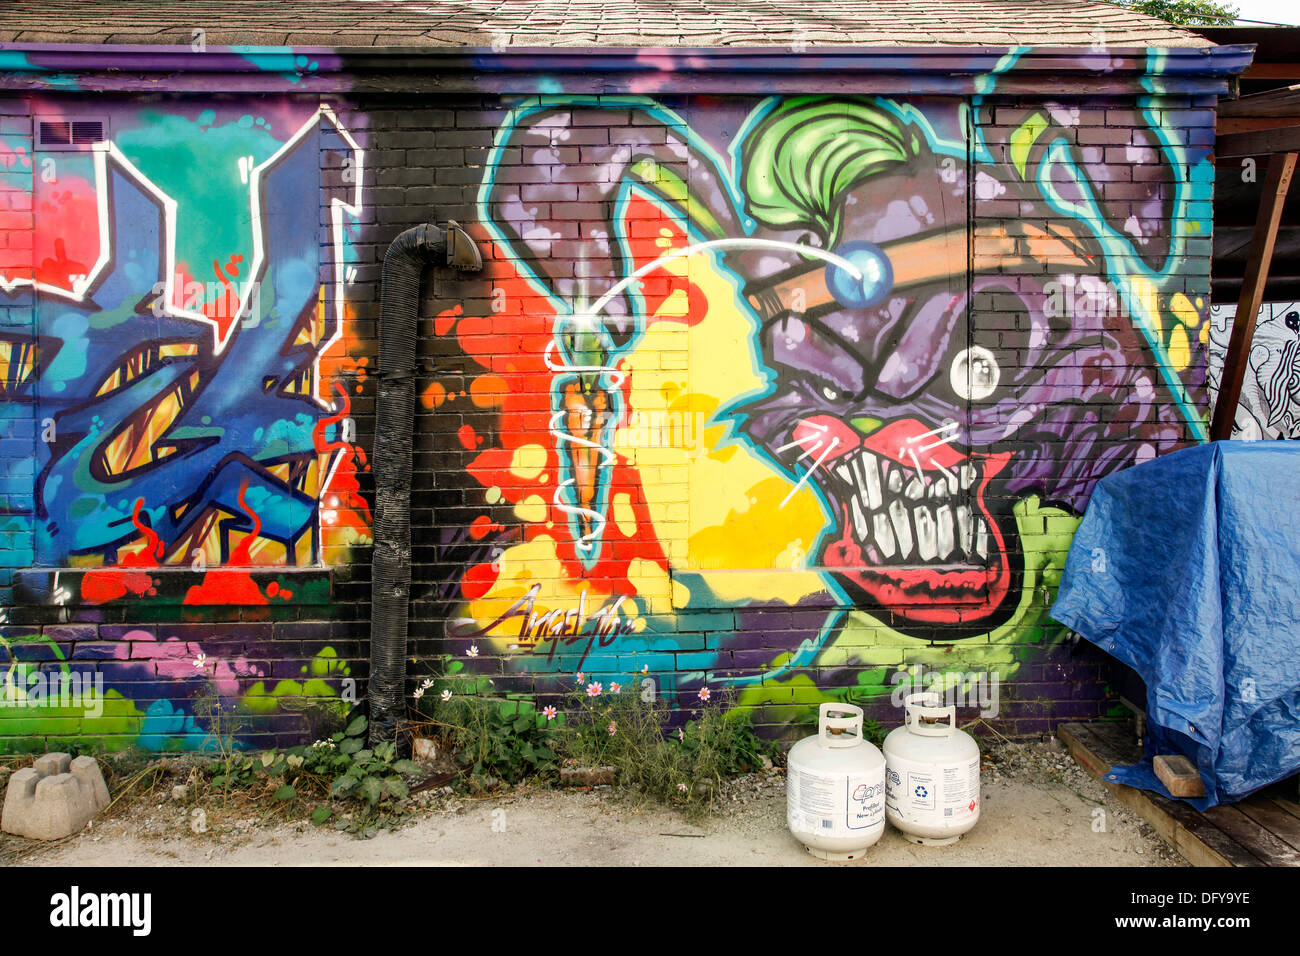 Graffiti and wall art as decoration and art deco on outdoor wall in toronto ontario